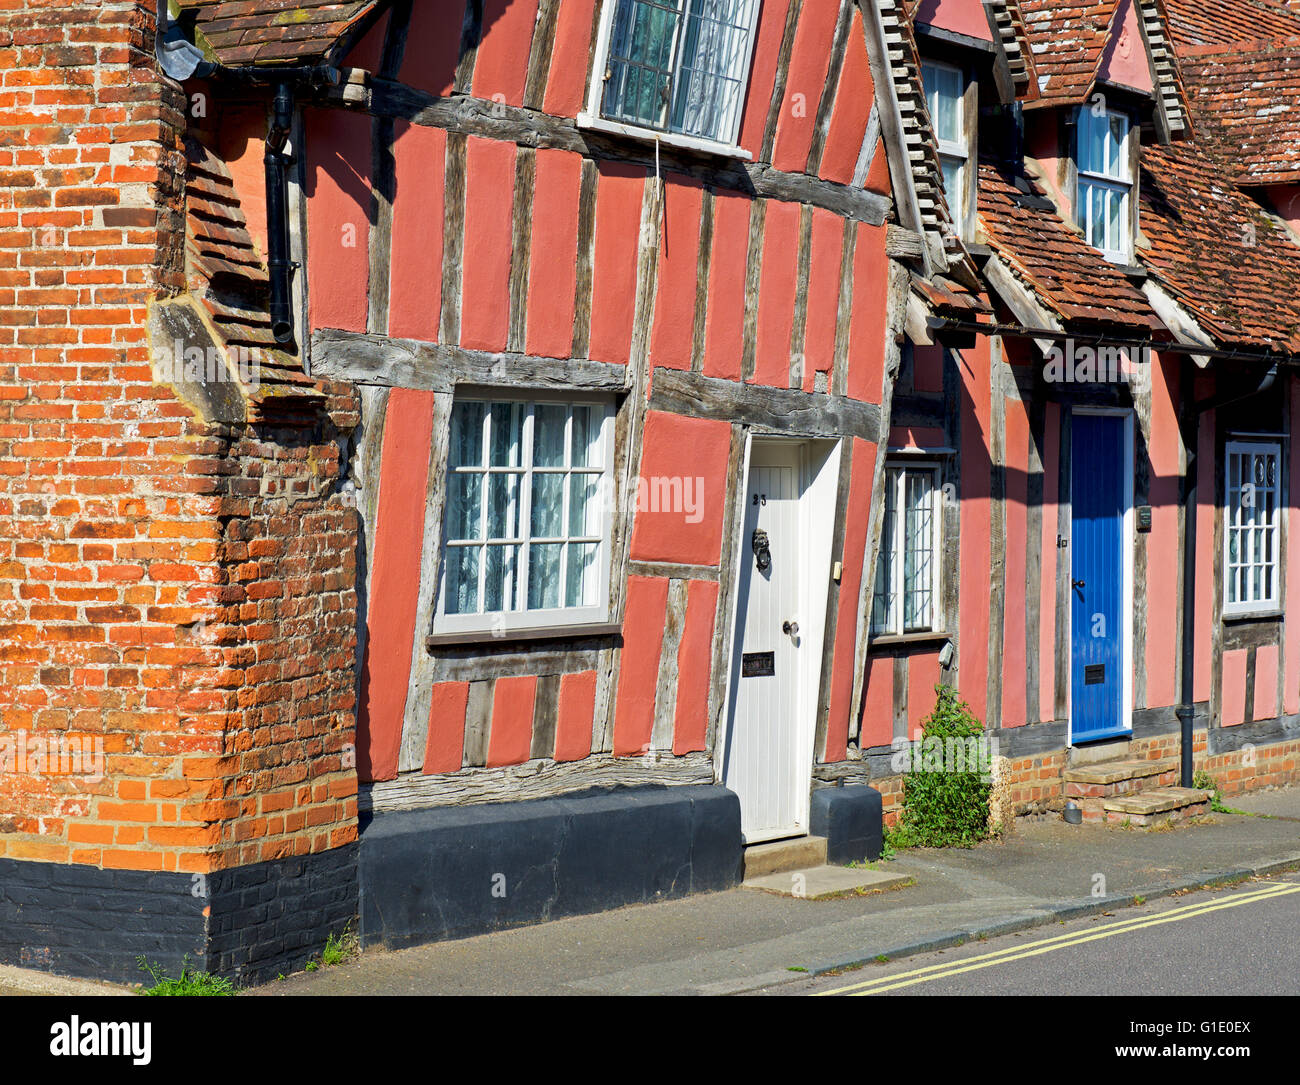 Half-timbered houses in the village of Lavenham, Suffolk, England UK Stock Photo